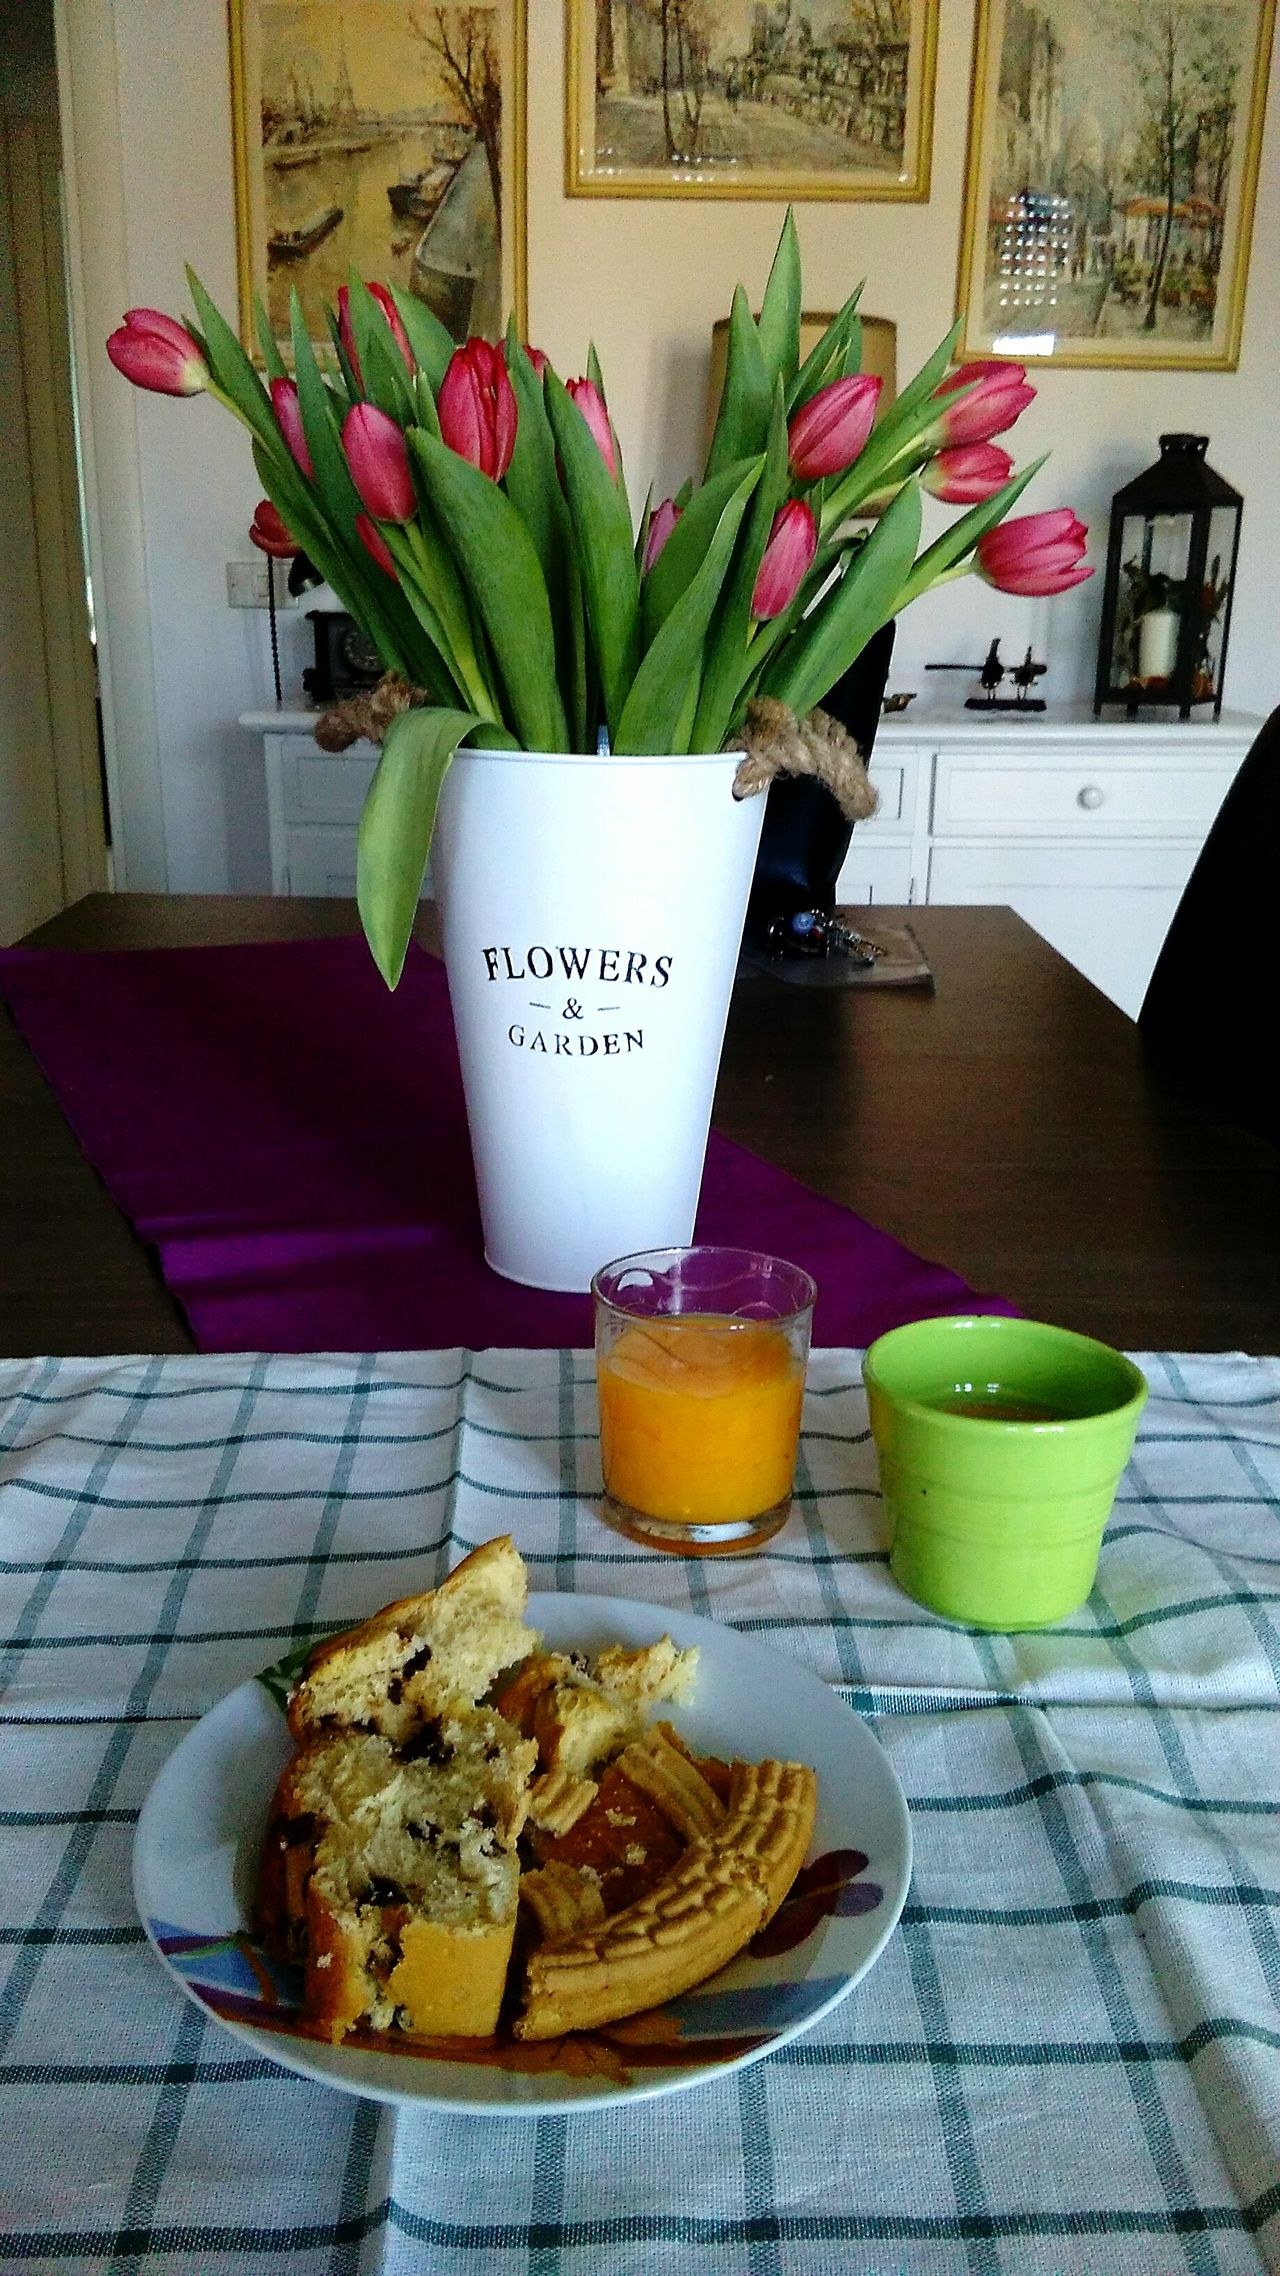 Italian Breakfast Spring Flowers Tulips My Home My Live, My Wold